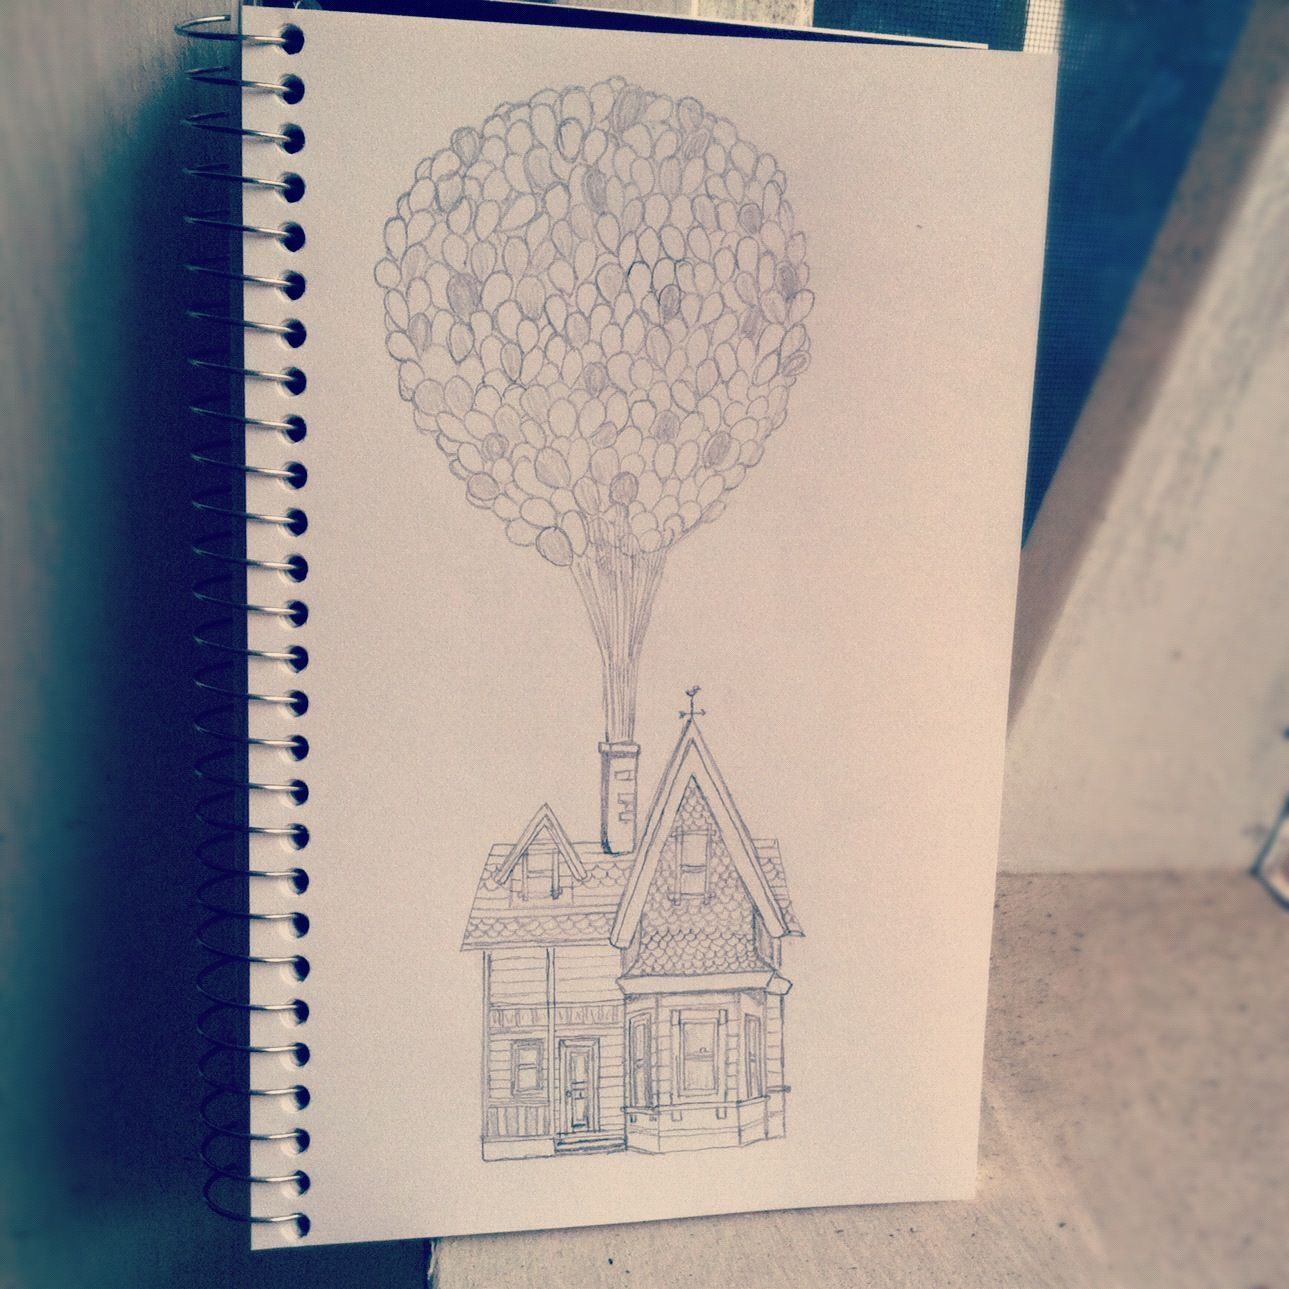 1289x1289 The Up House Drawn In Pencil Art House Drawing